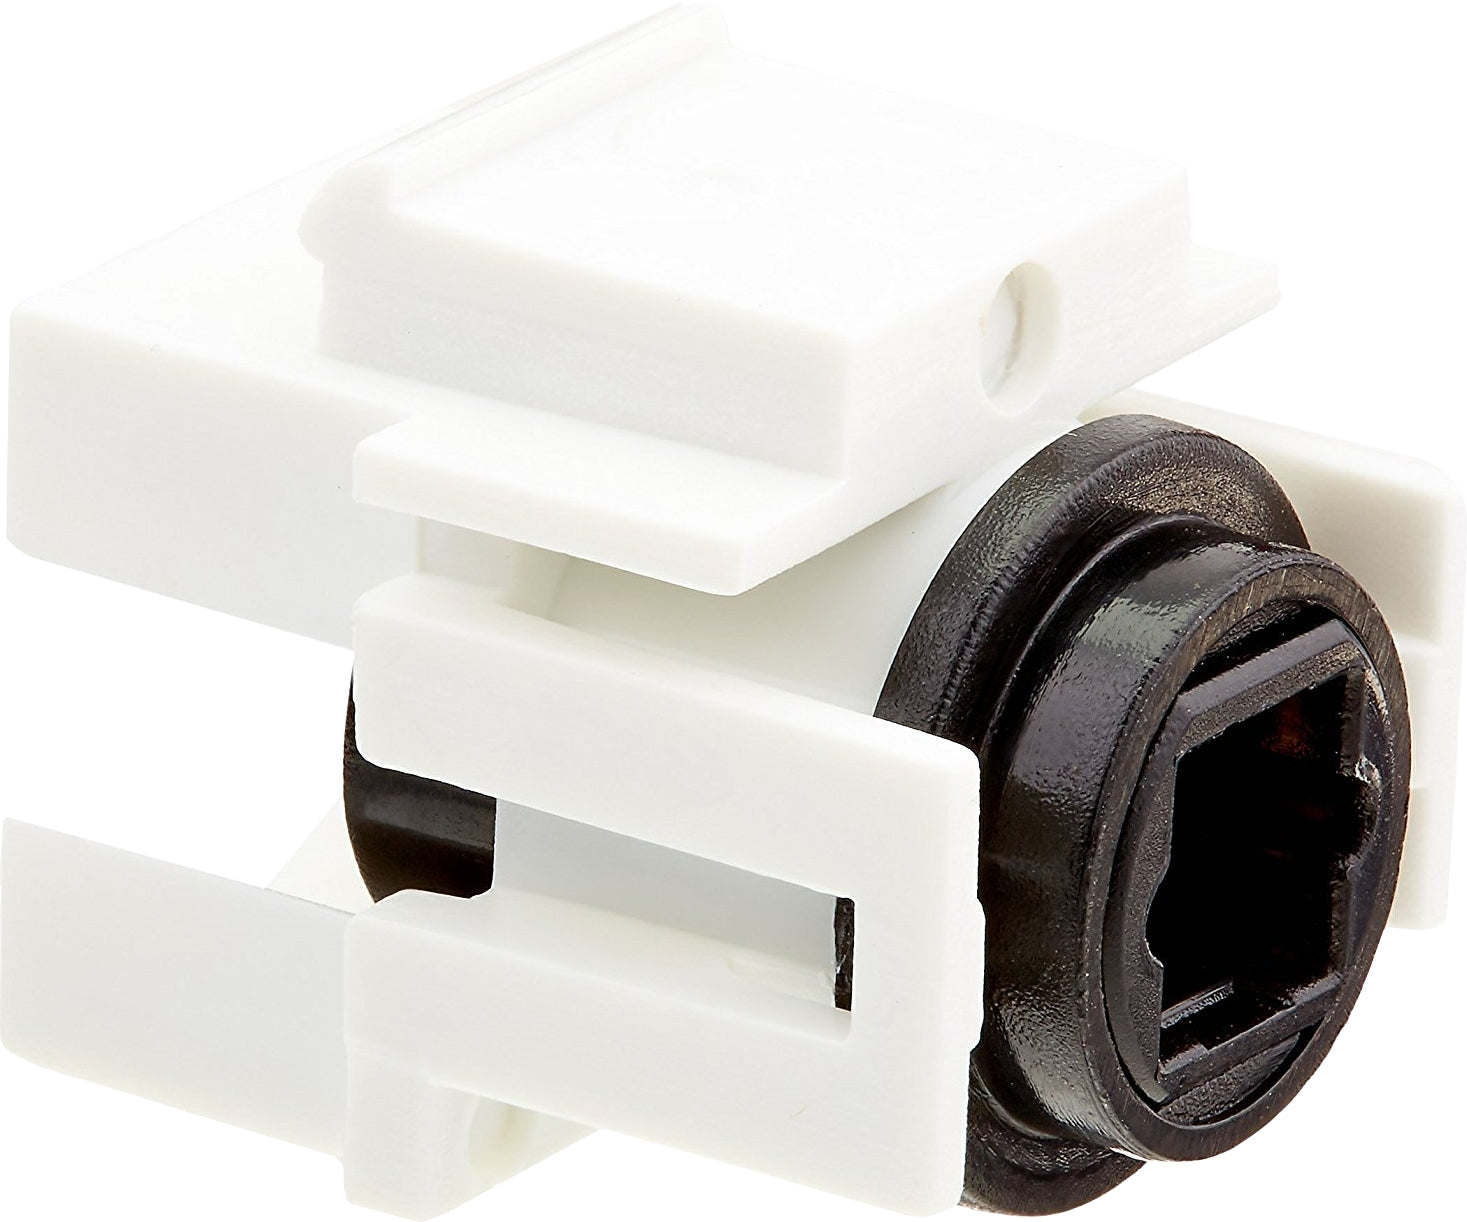 07-6058 Toslink Optical Audio Keystone Jack